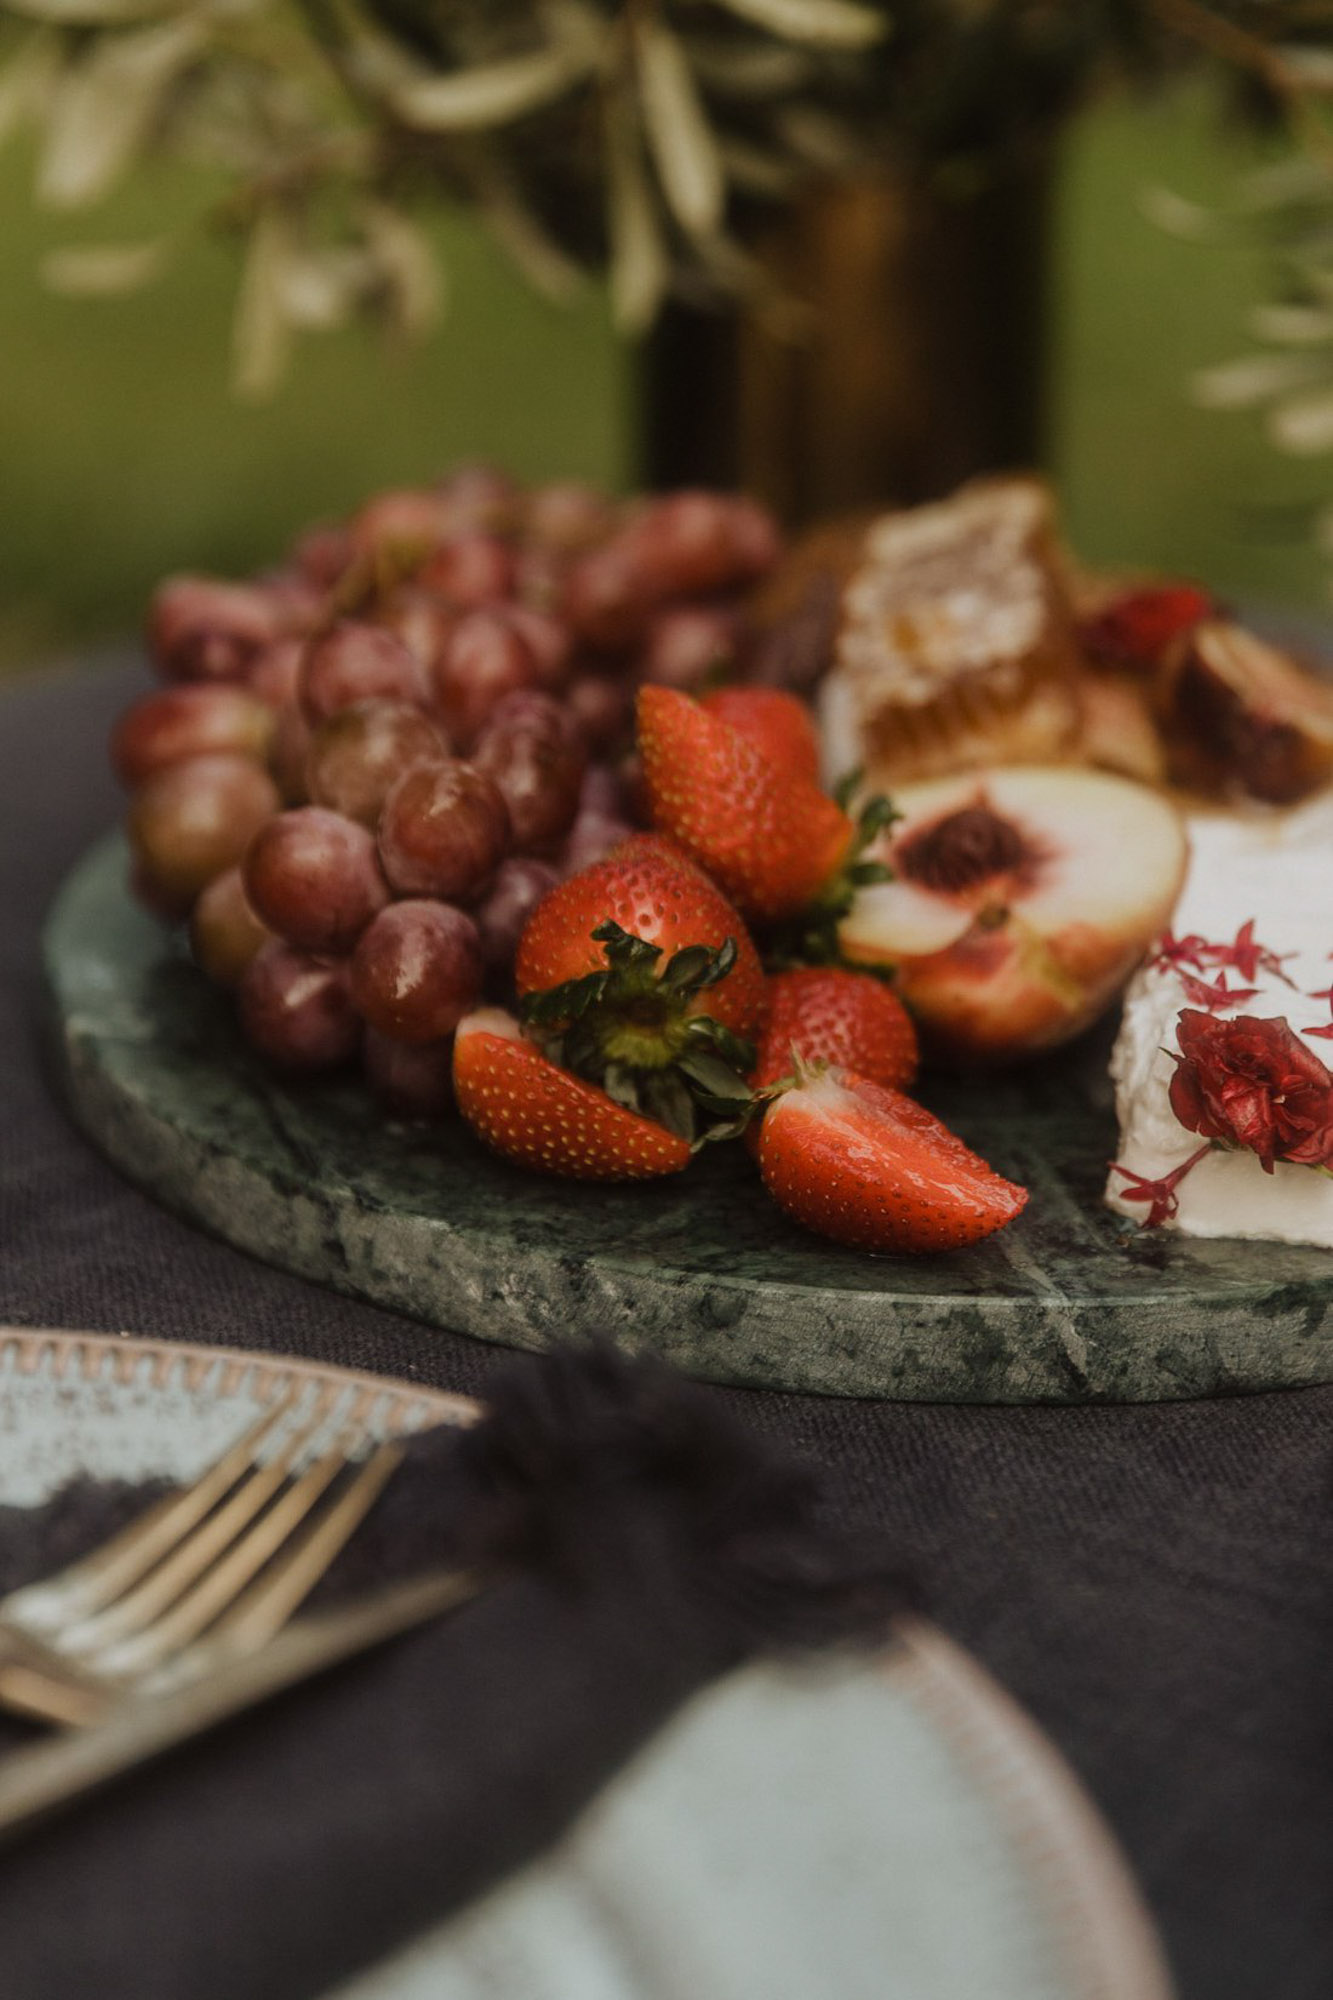 Styled Photshoot - Orchard Picnic Cairns  - Event Styling and Catering by The Collection Co-16.jpg